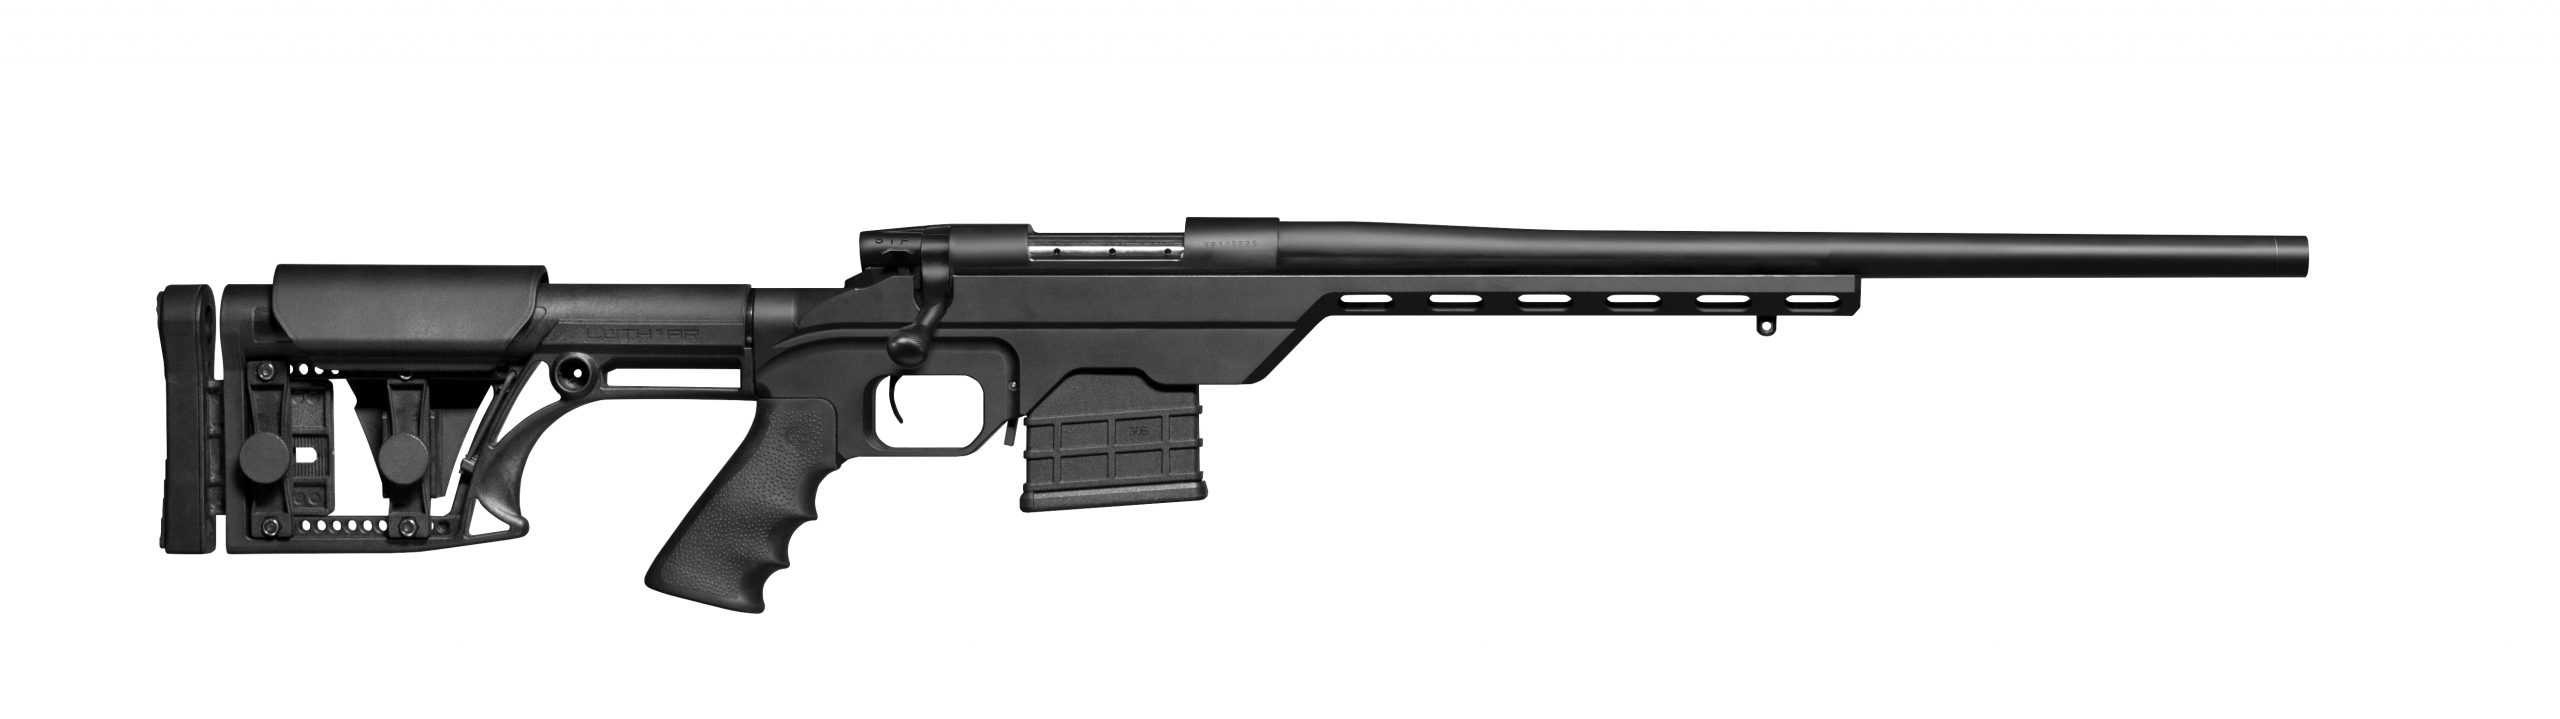 Vanguard® Modular Chassis - Weatherby, Inc.